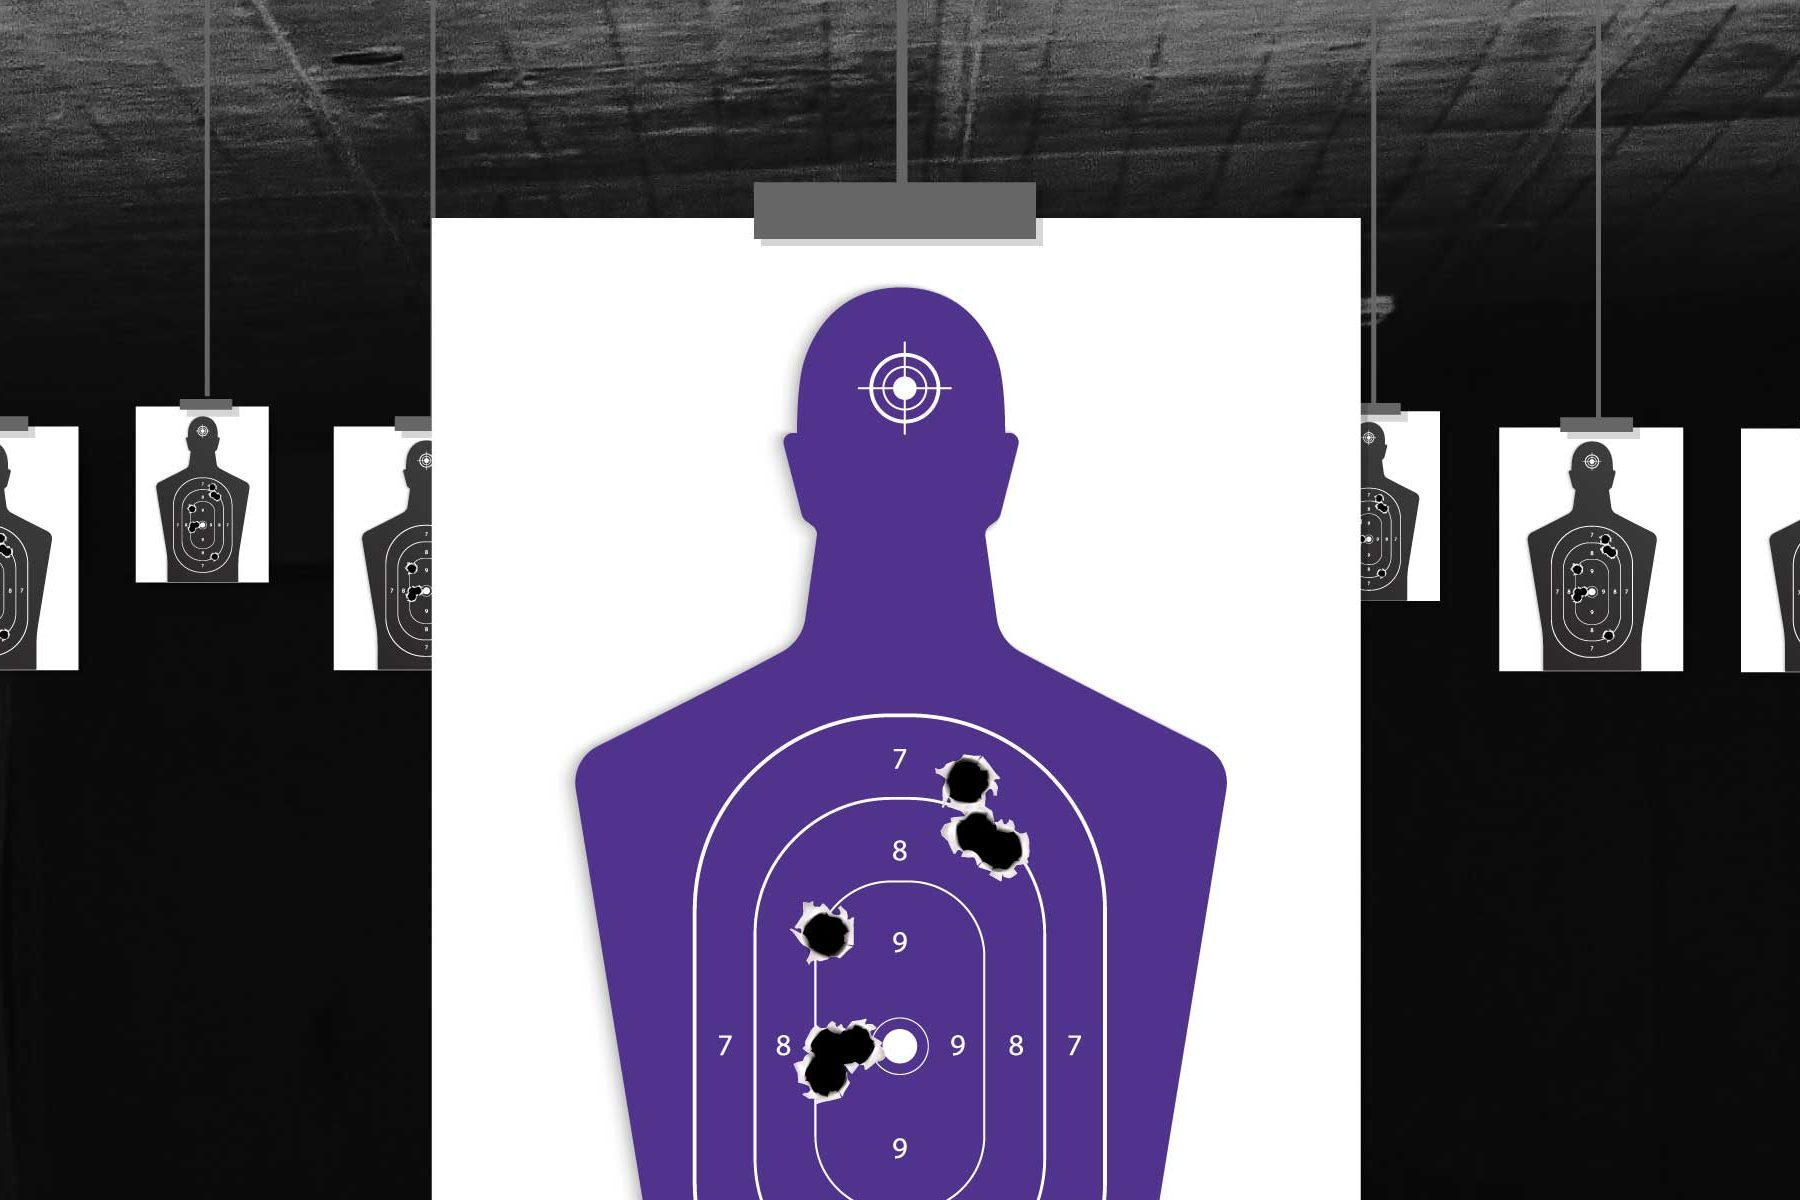 A paper target for shooting with holes in it.